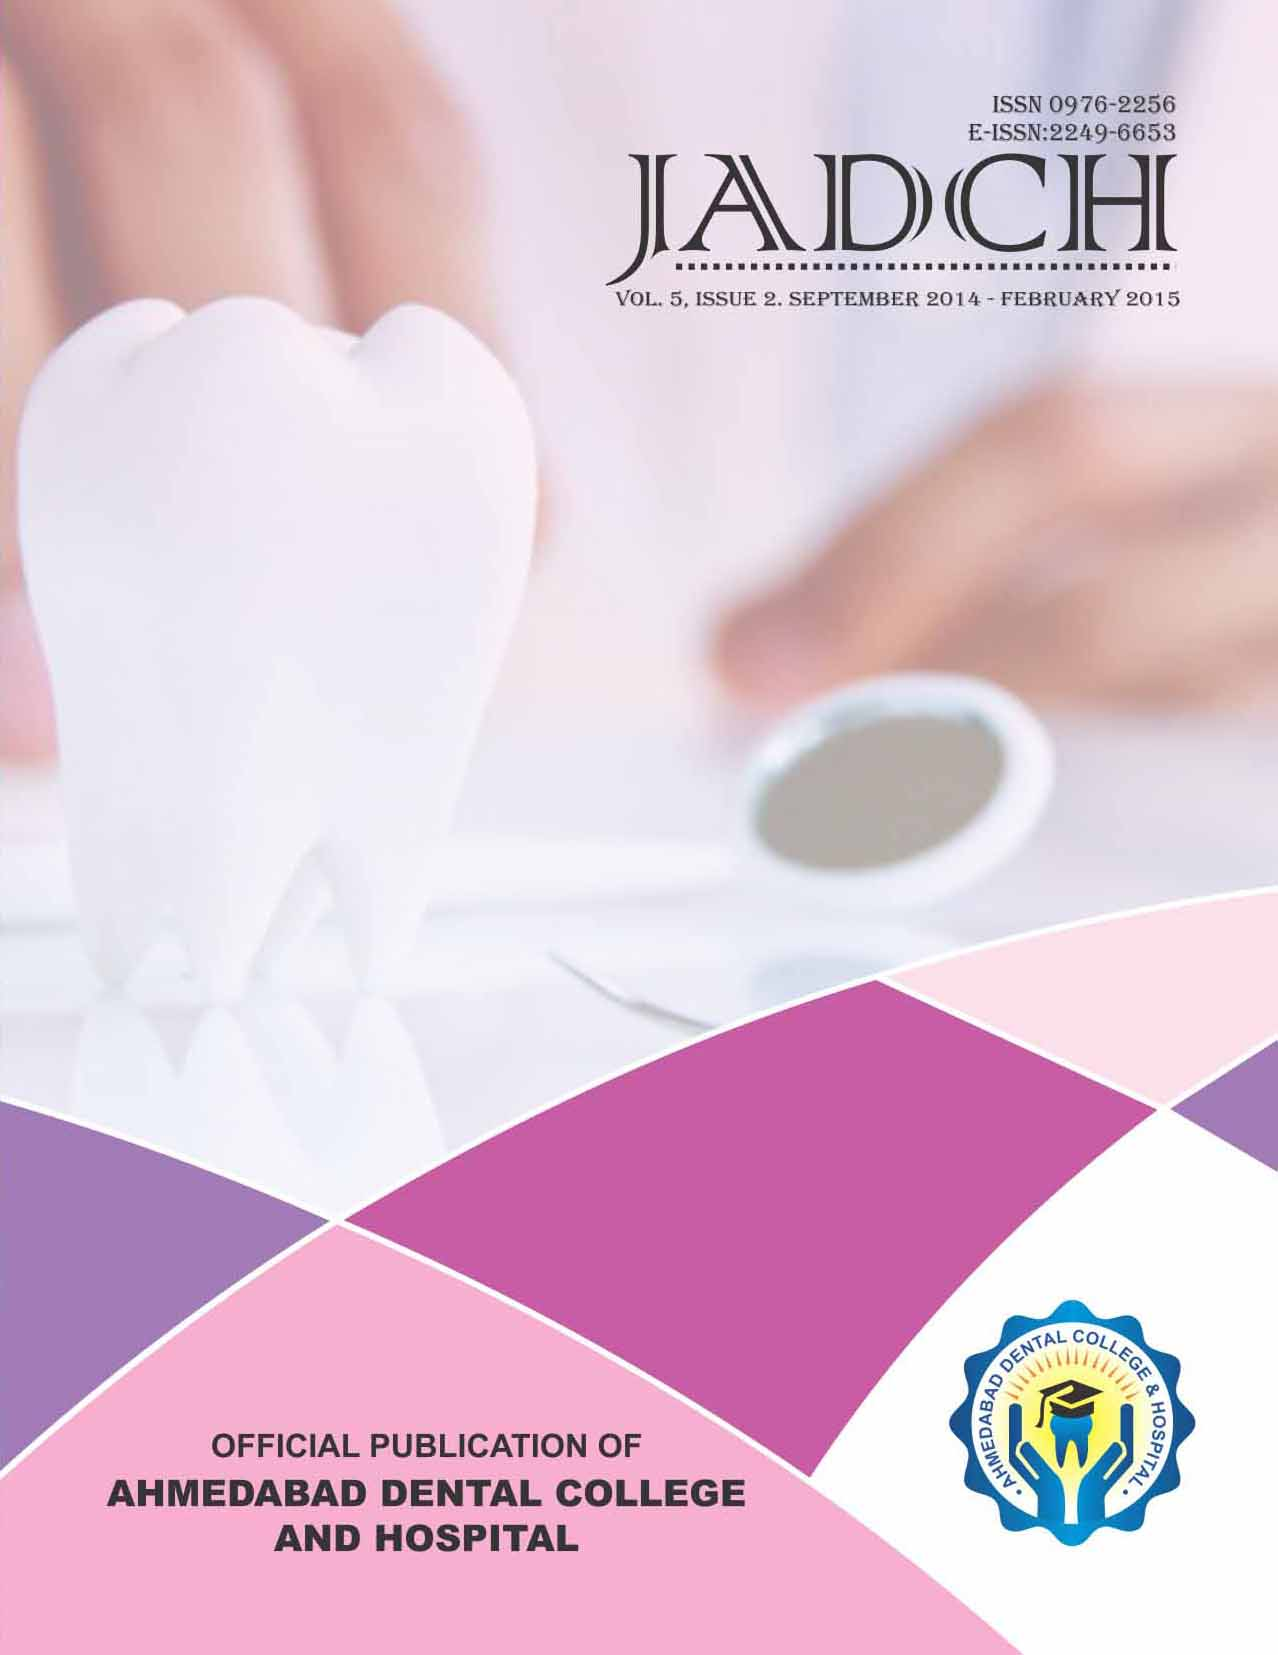 ADCH Journal - Vol 5- issue 2